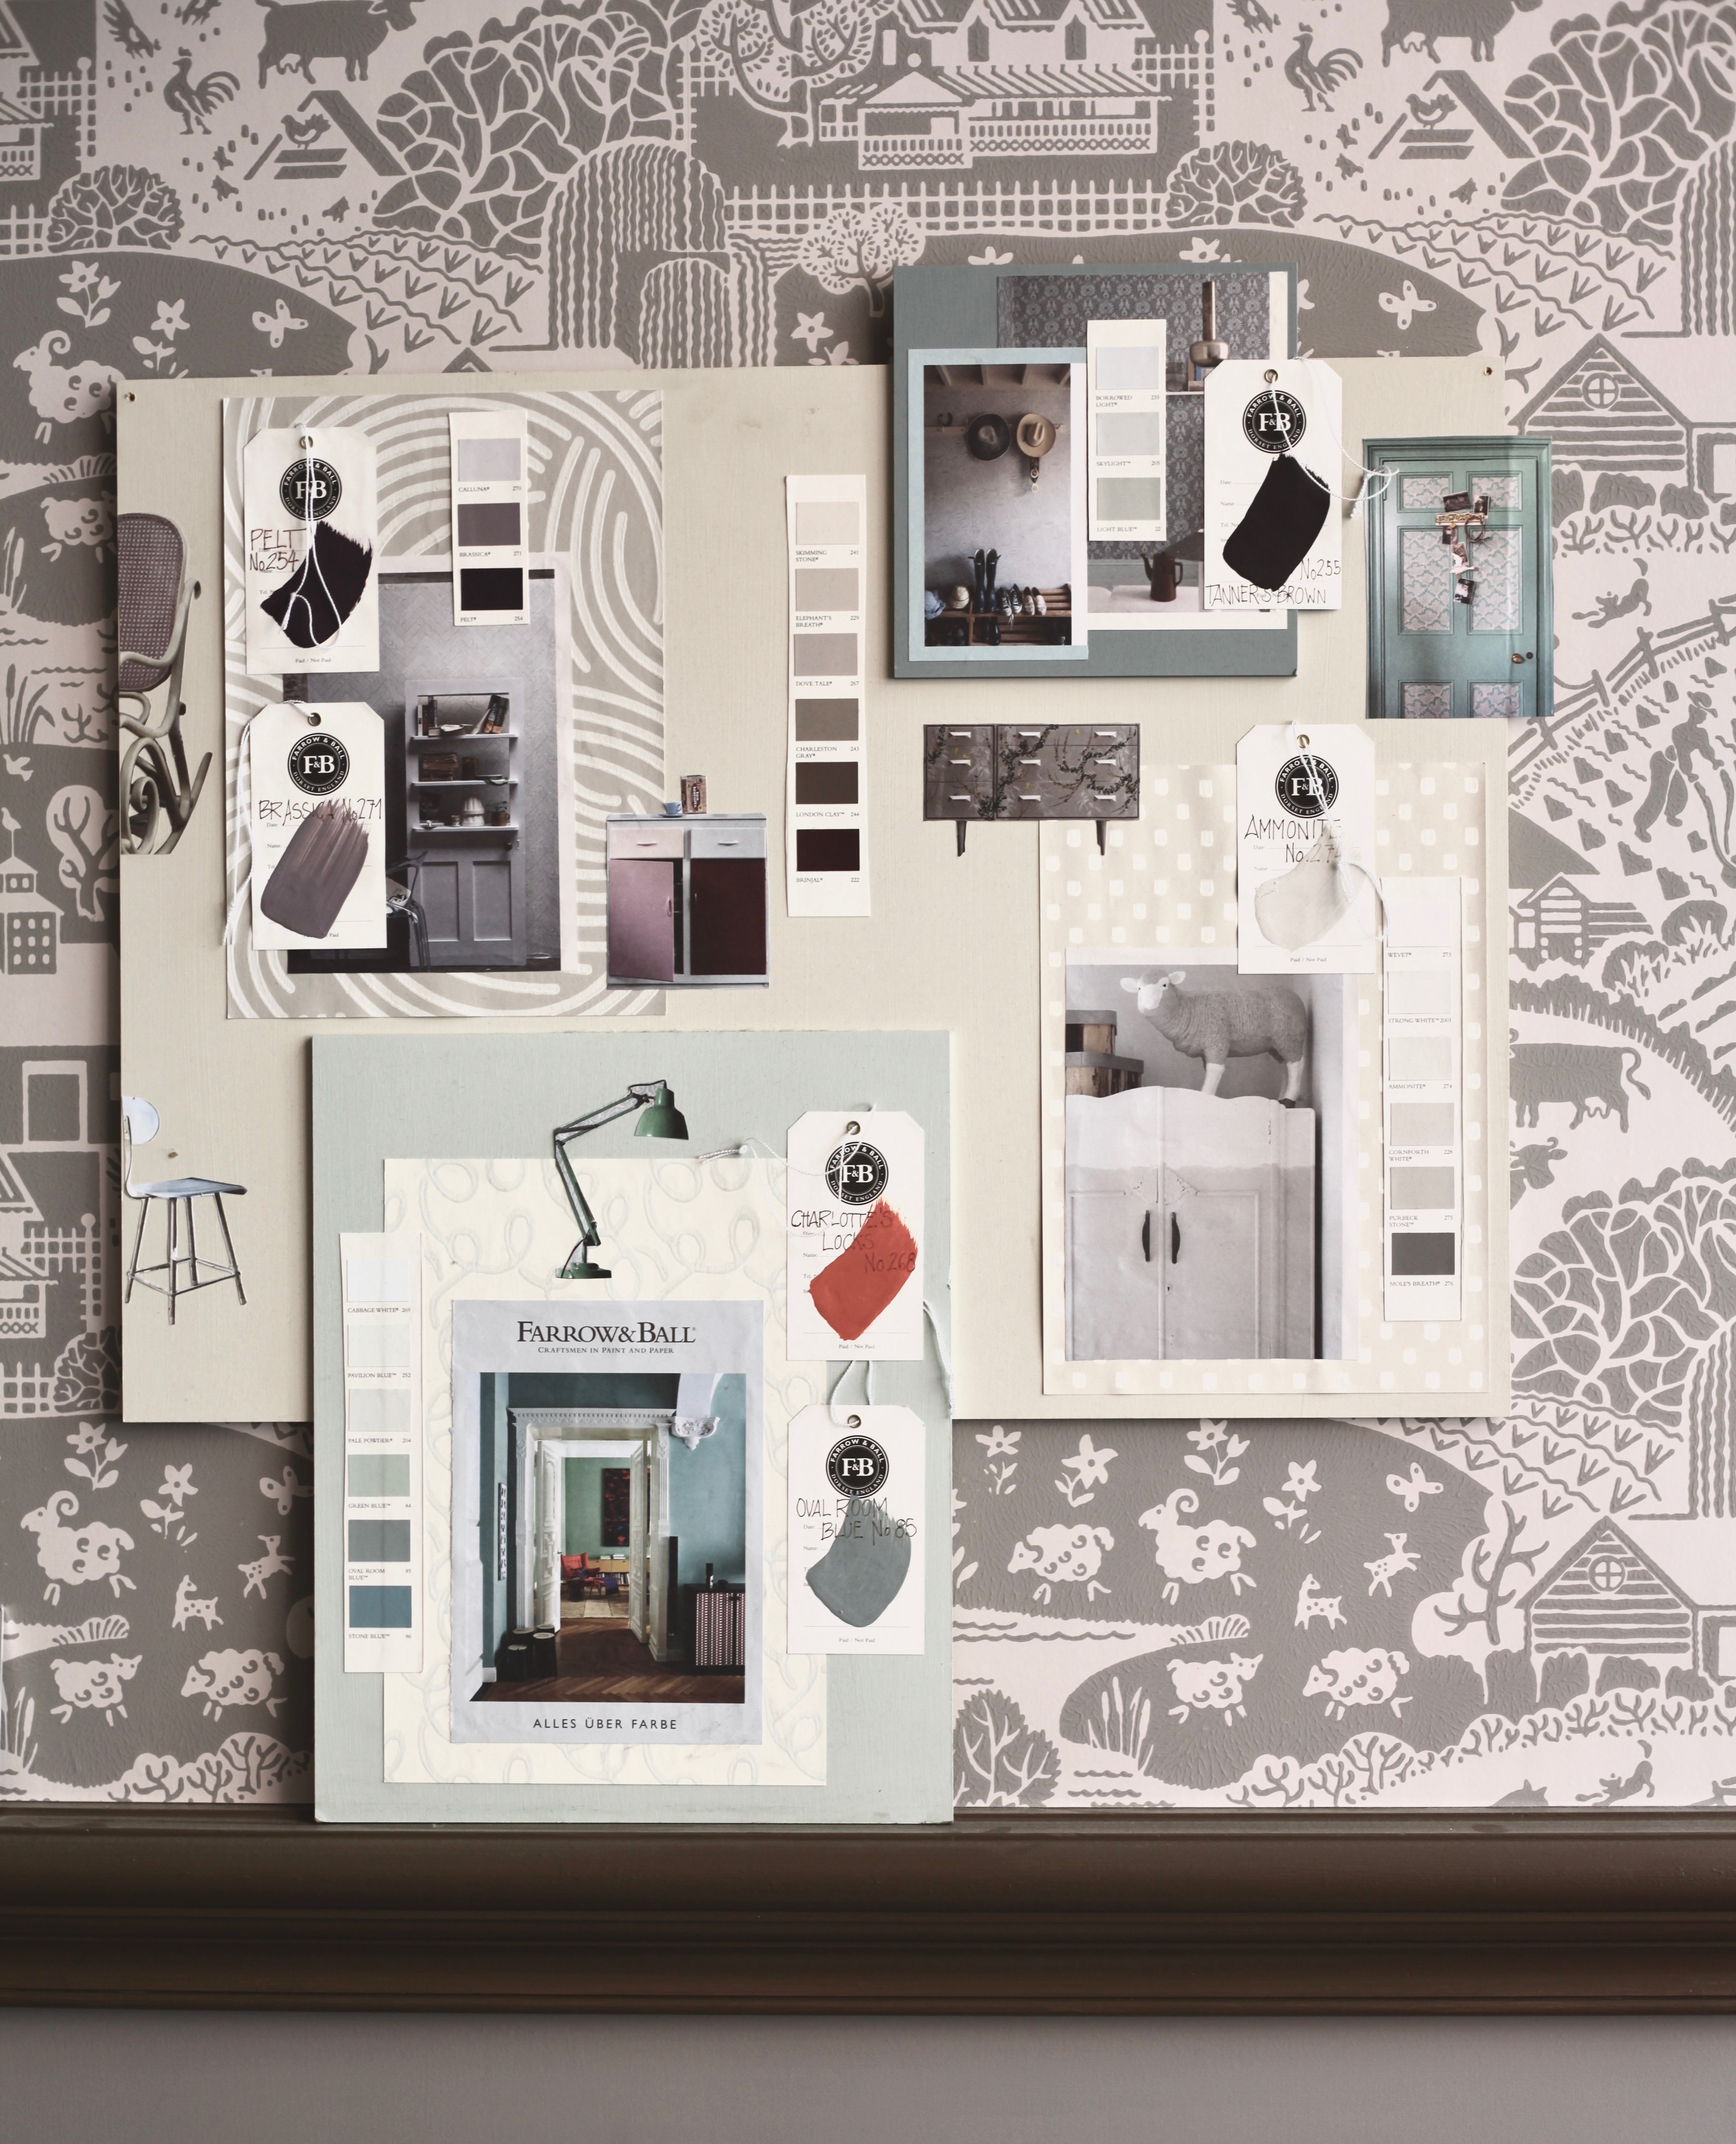 mood board example for color harmony seen at the farrow ball showroom in munich. Black Bedroom Furniture Sets. Home Design Ideas